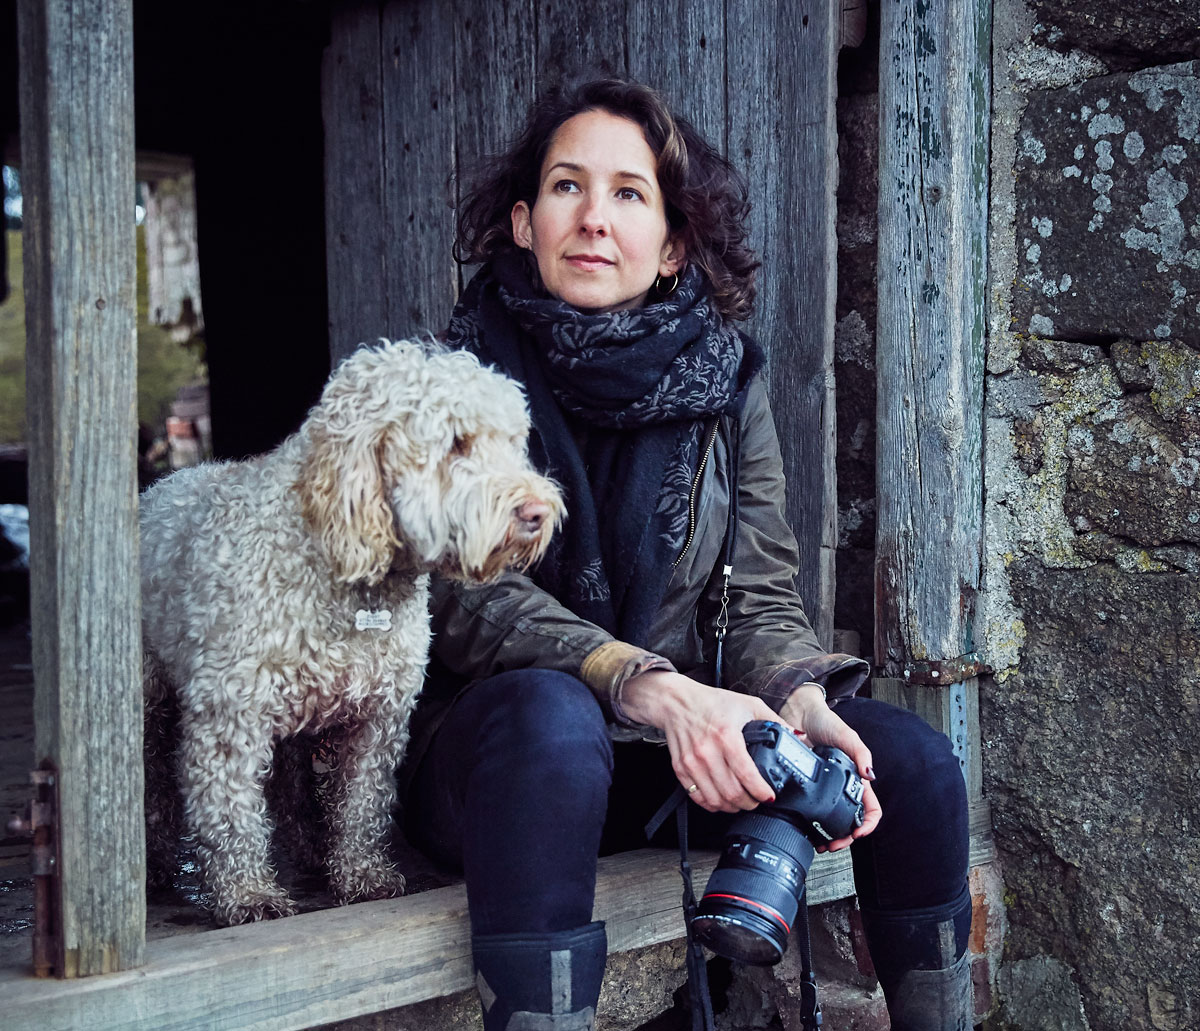 EXPERT ADVICE - Moorland View is owned and run by food and travel journalist Suzy Bennett. Suzy has written several travel guides to Devon and reviewed over 50 of its restaurants, so is the perfect person to ask about specific foodie wants.